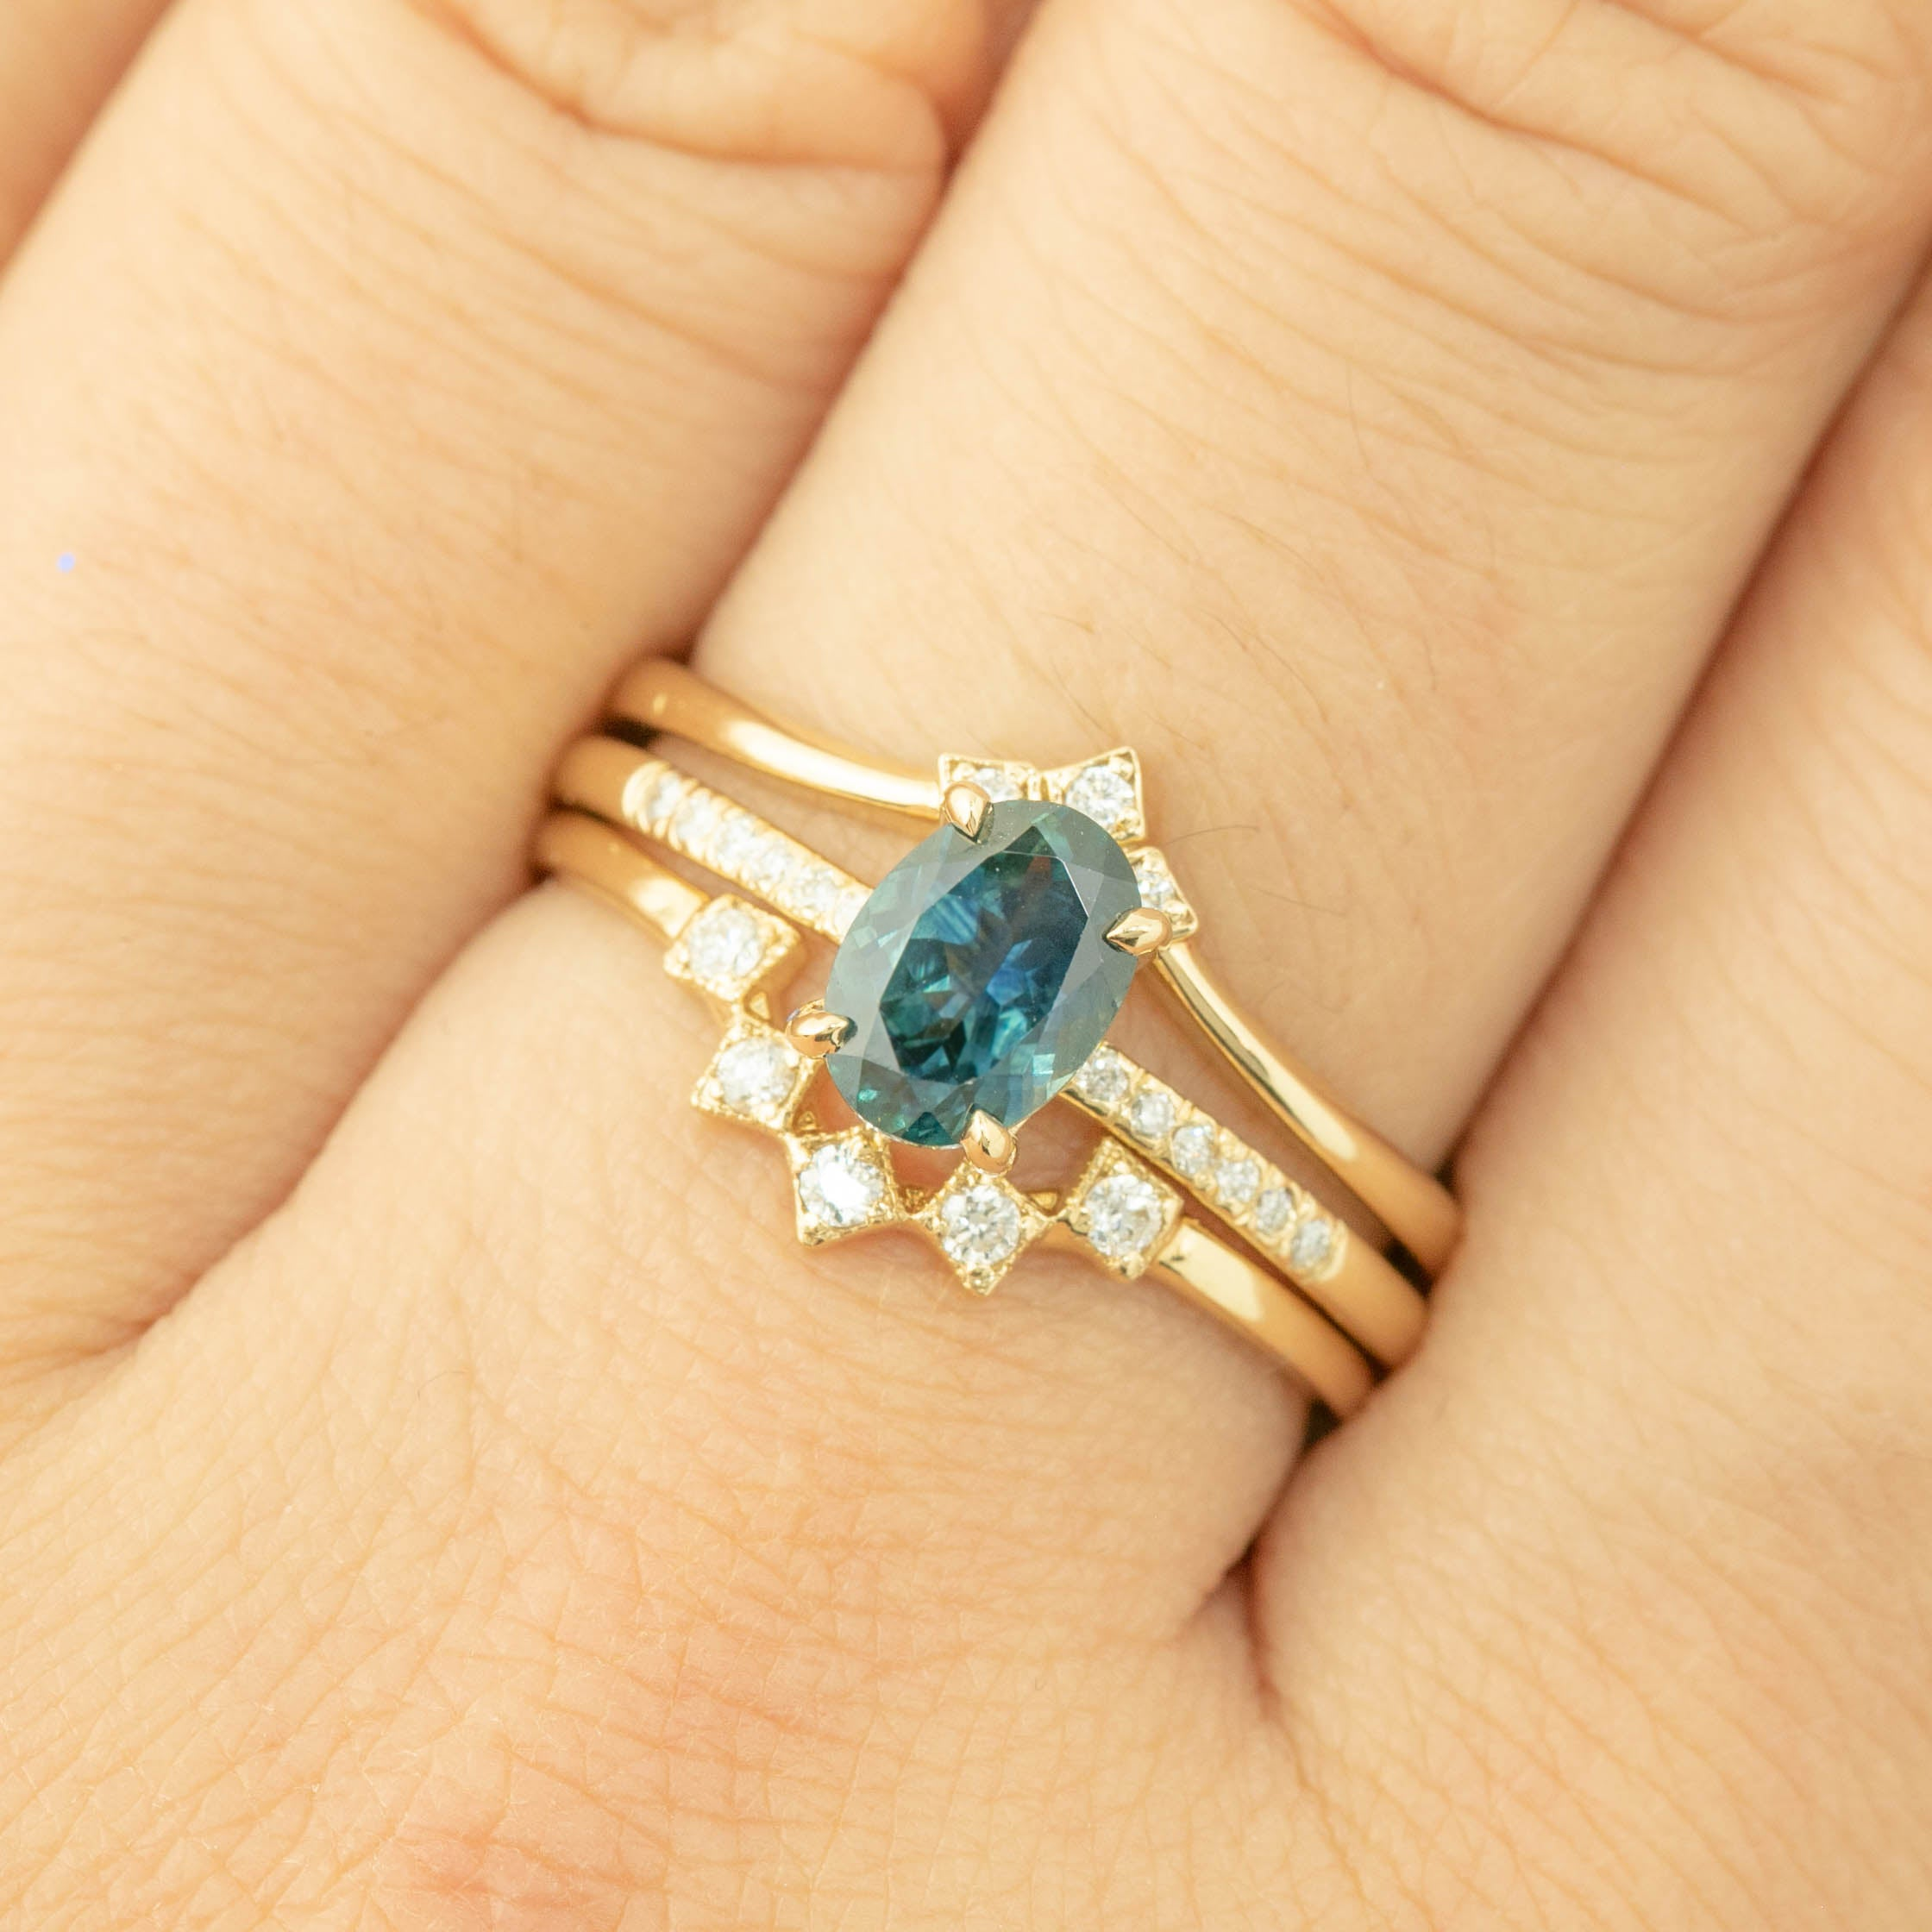 Audrey Ring - 1ct Teal Blue Montana Sapphire (One of a kind)